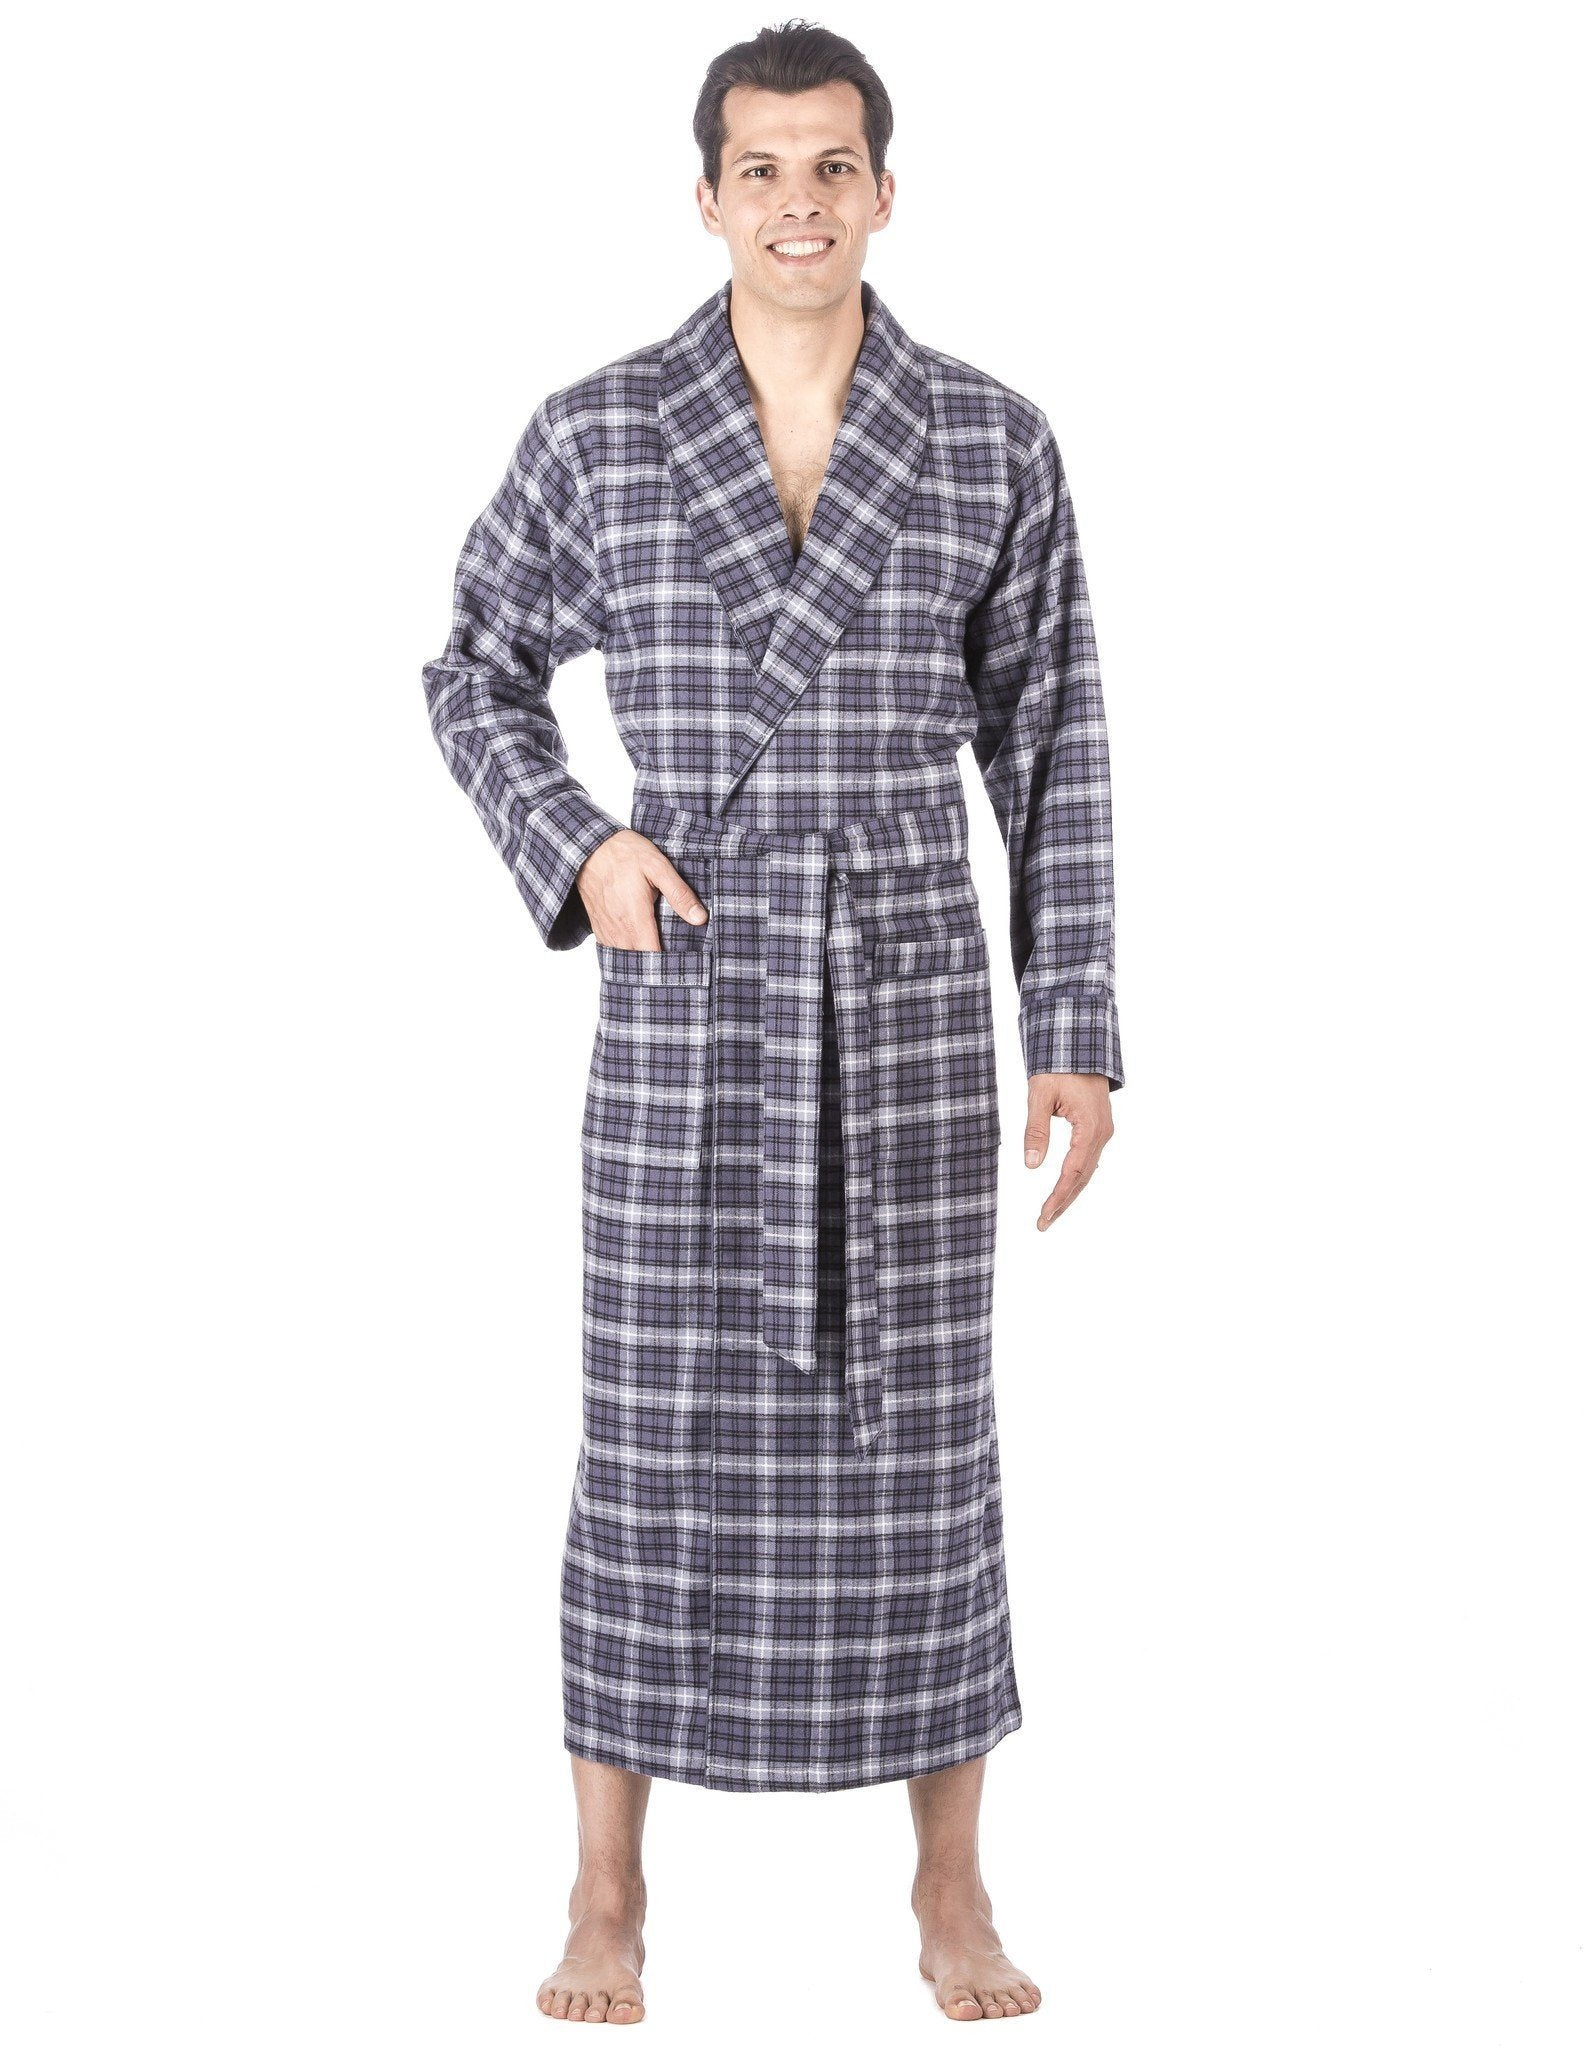 100% Cotton Flannel Robe, Full-Length Mens Bathrobe